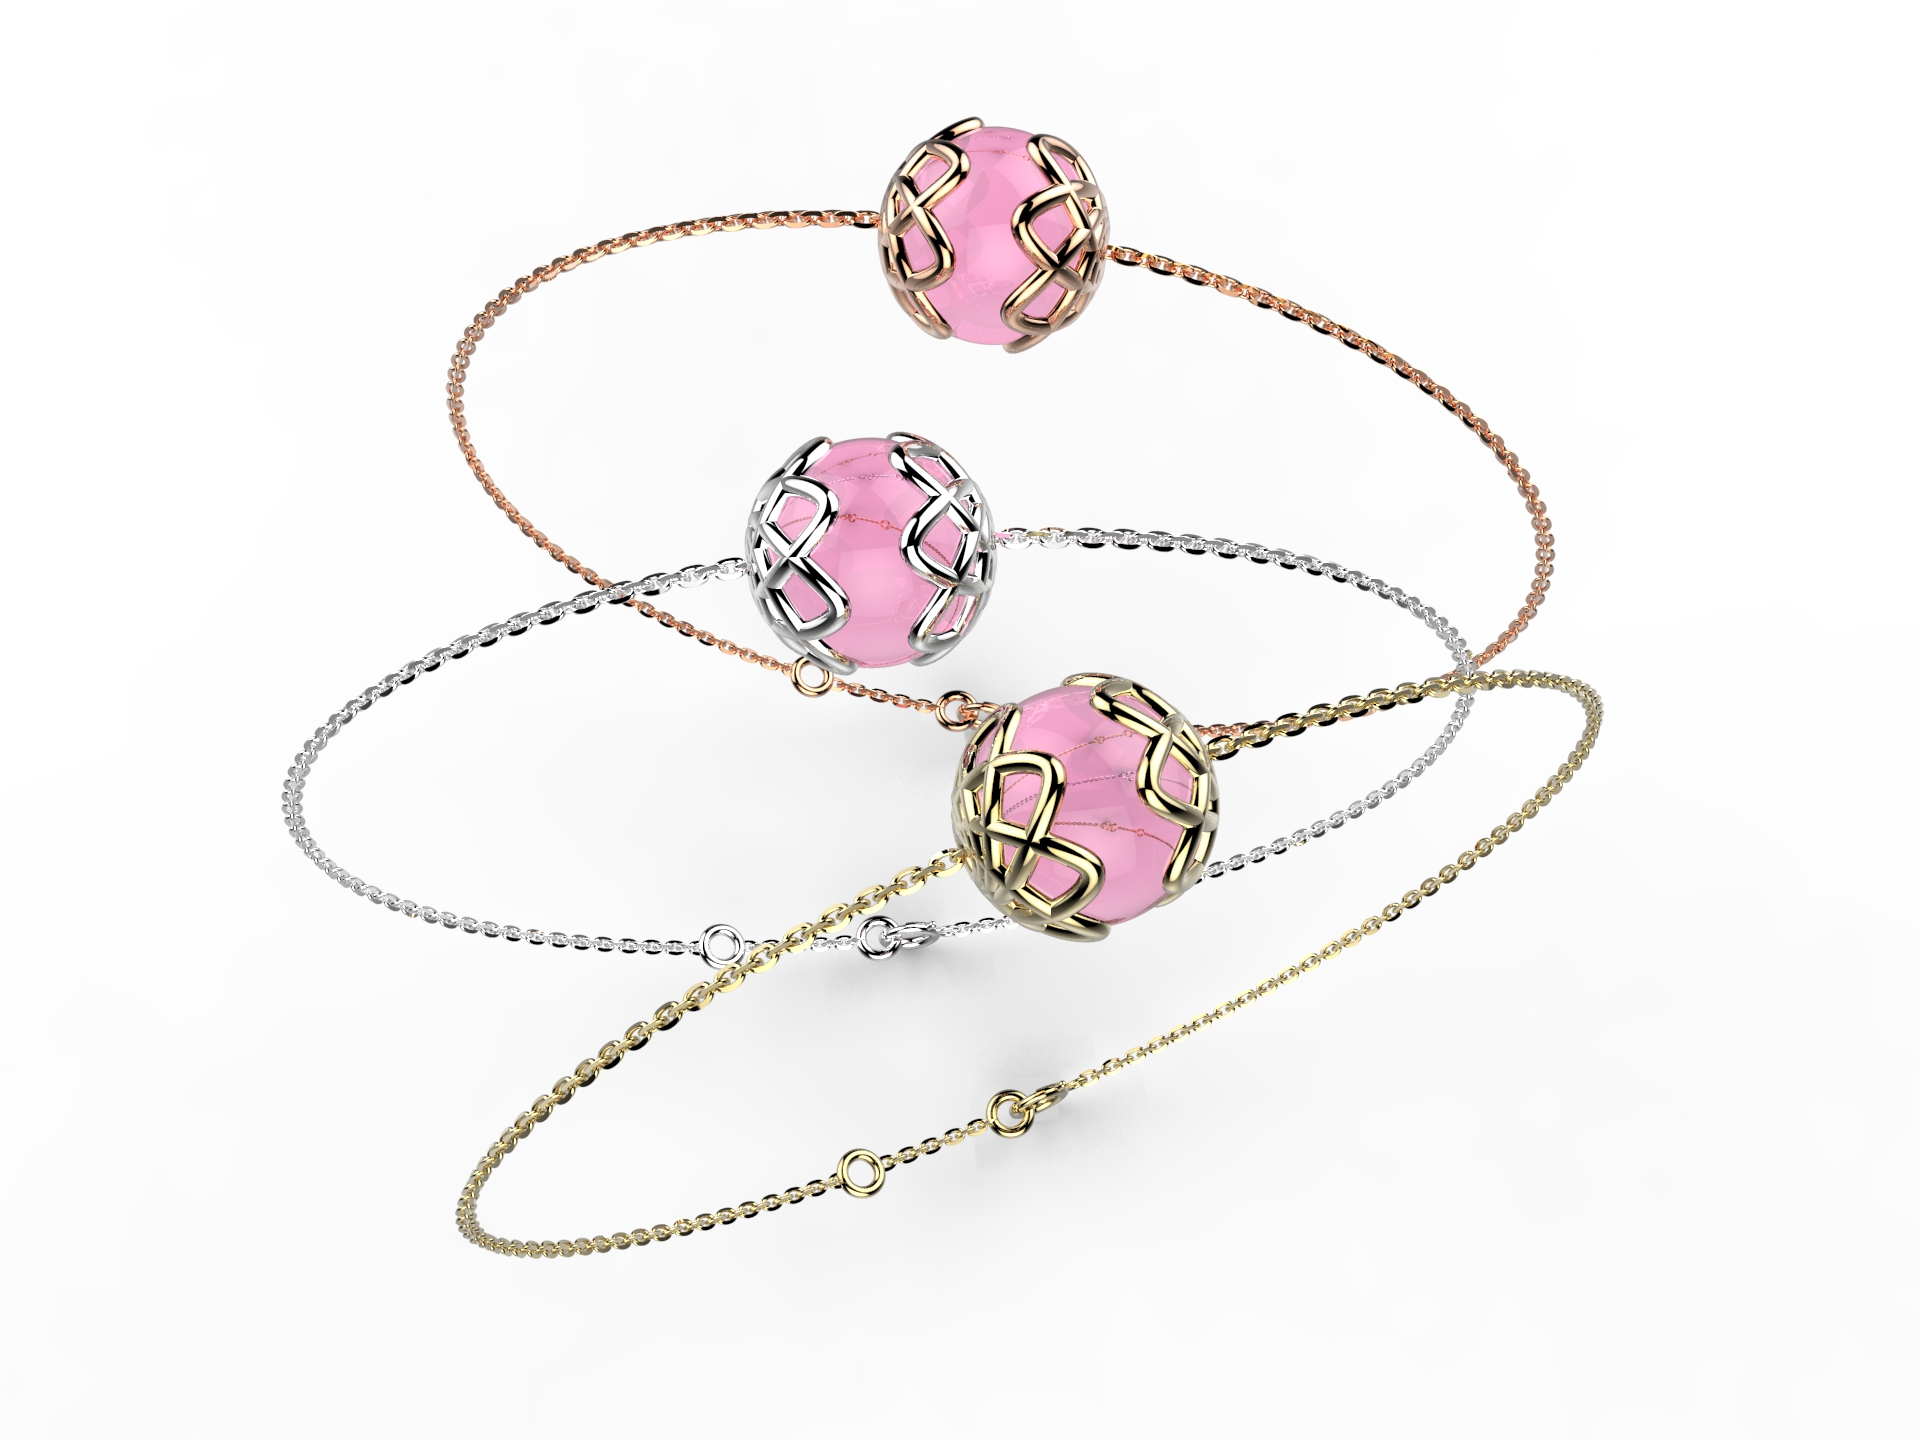 Bracelet or perle quartz rose 340 €